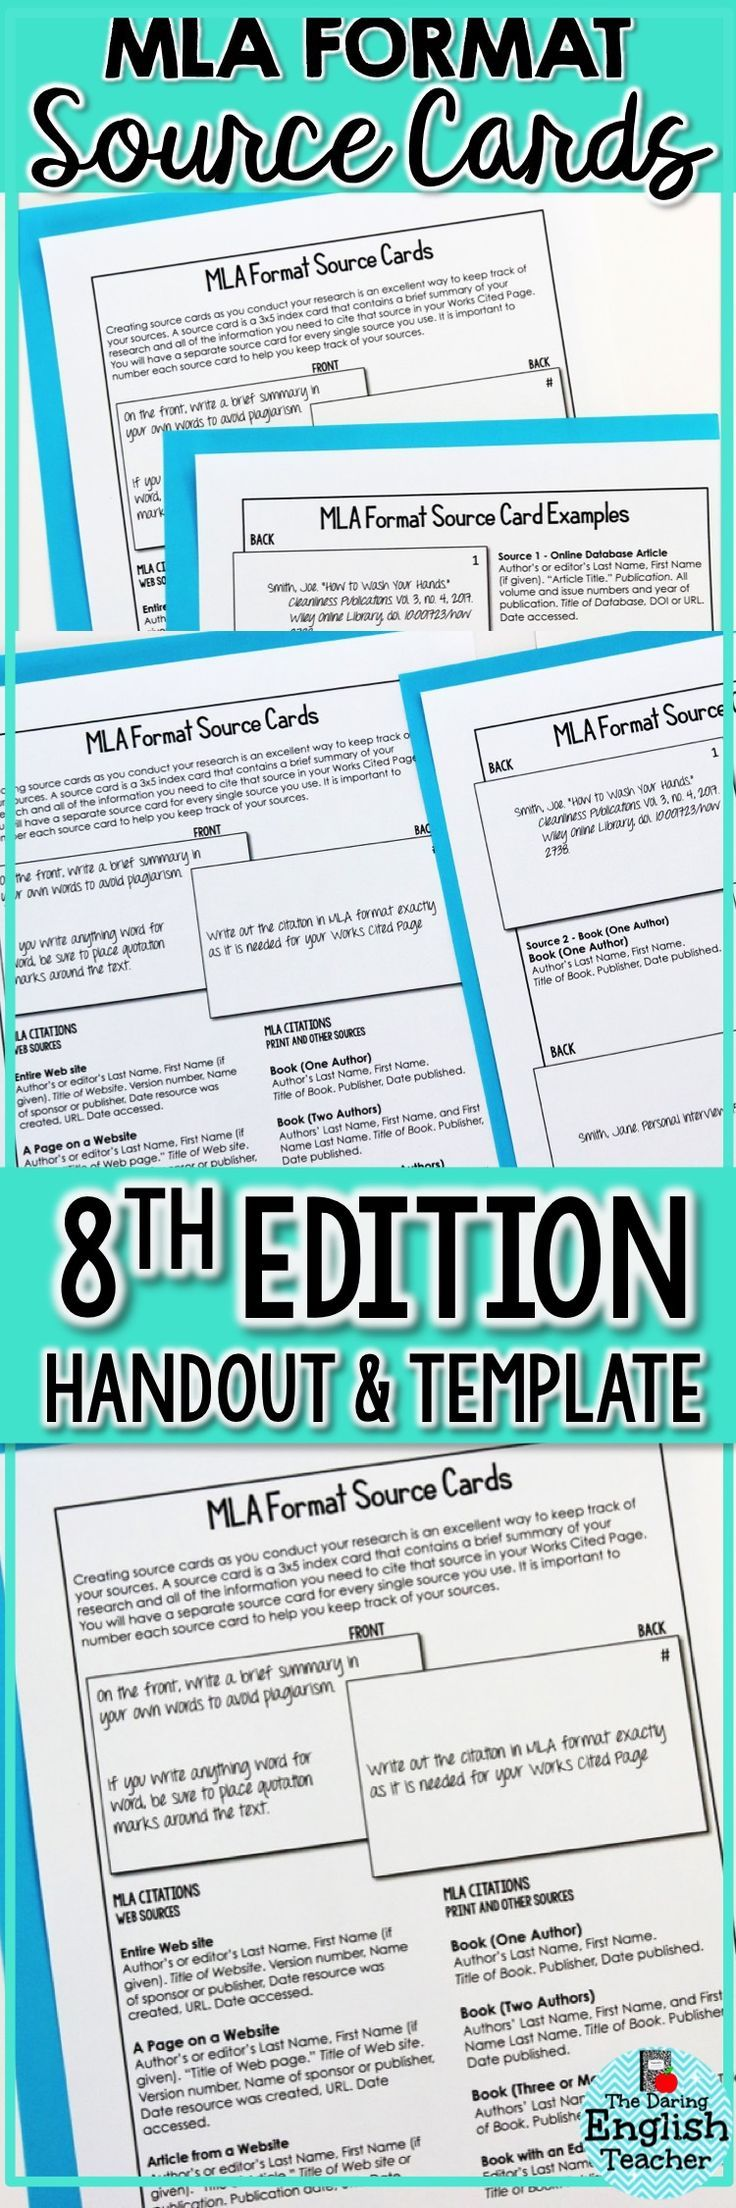 Help students master MLA Format with this handy source cards reference sheet and template.